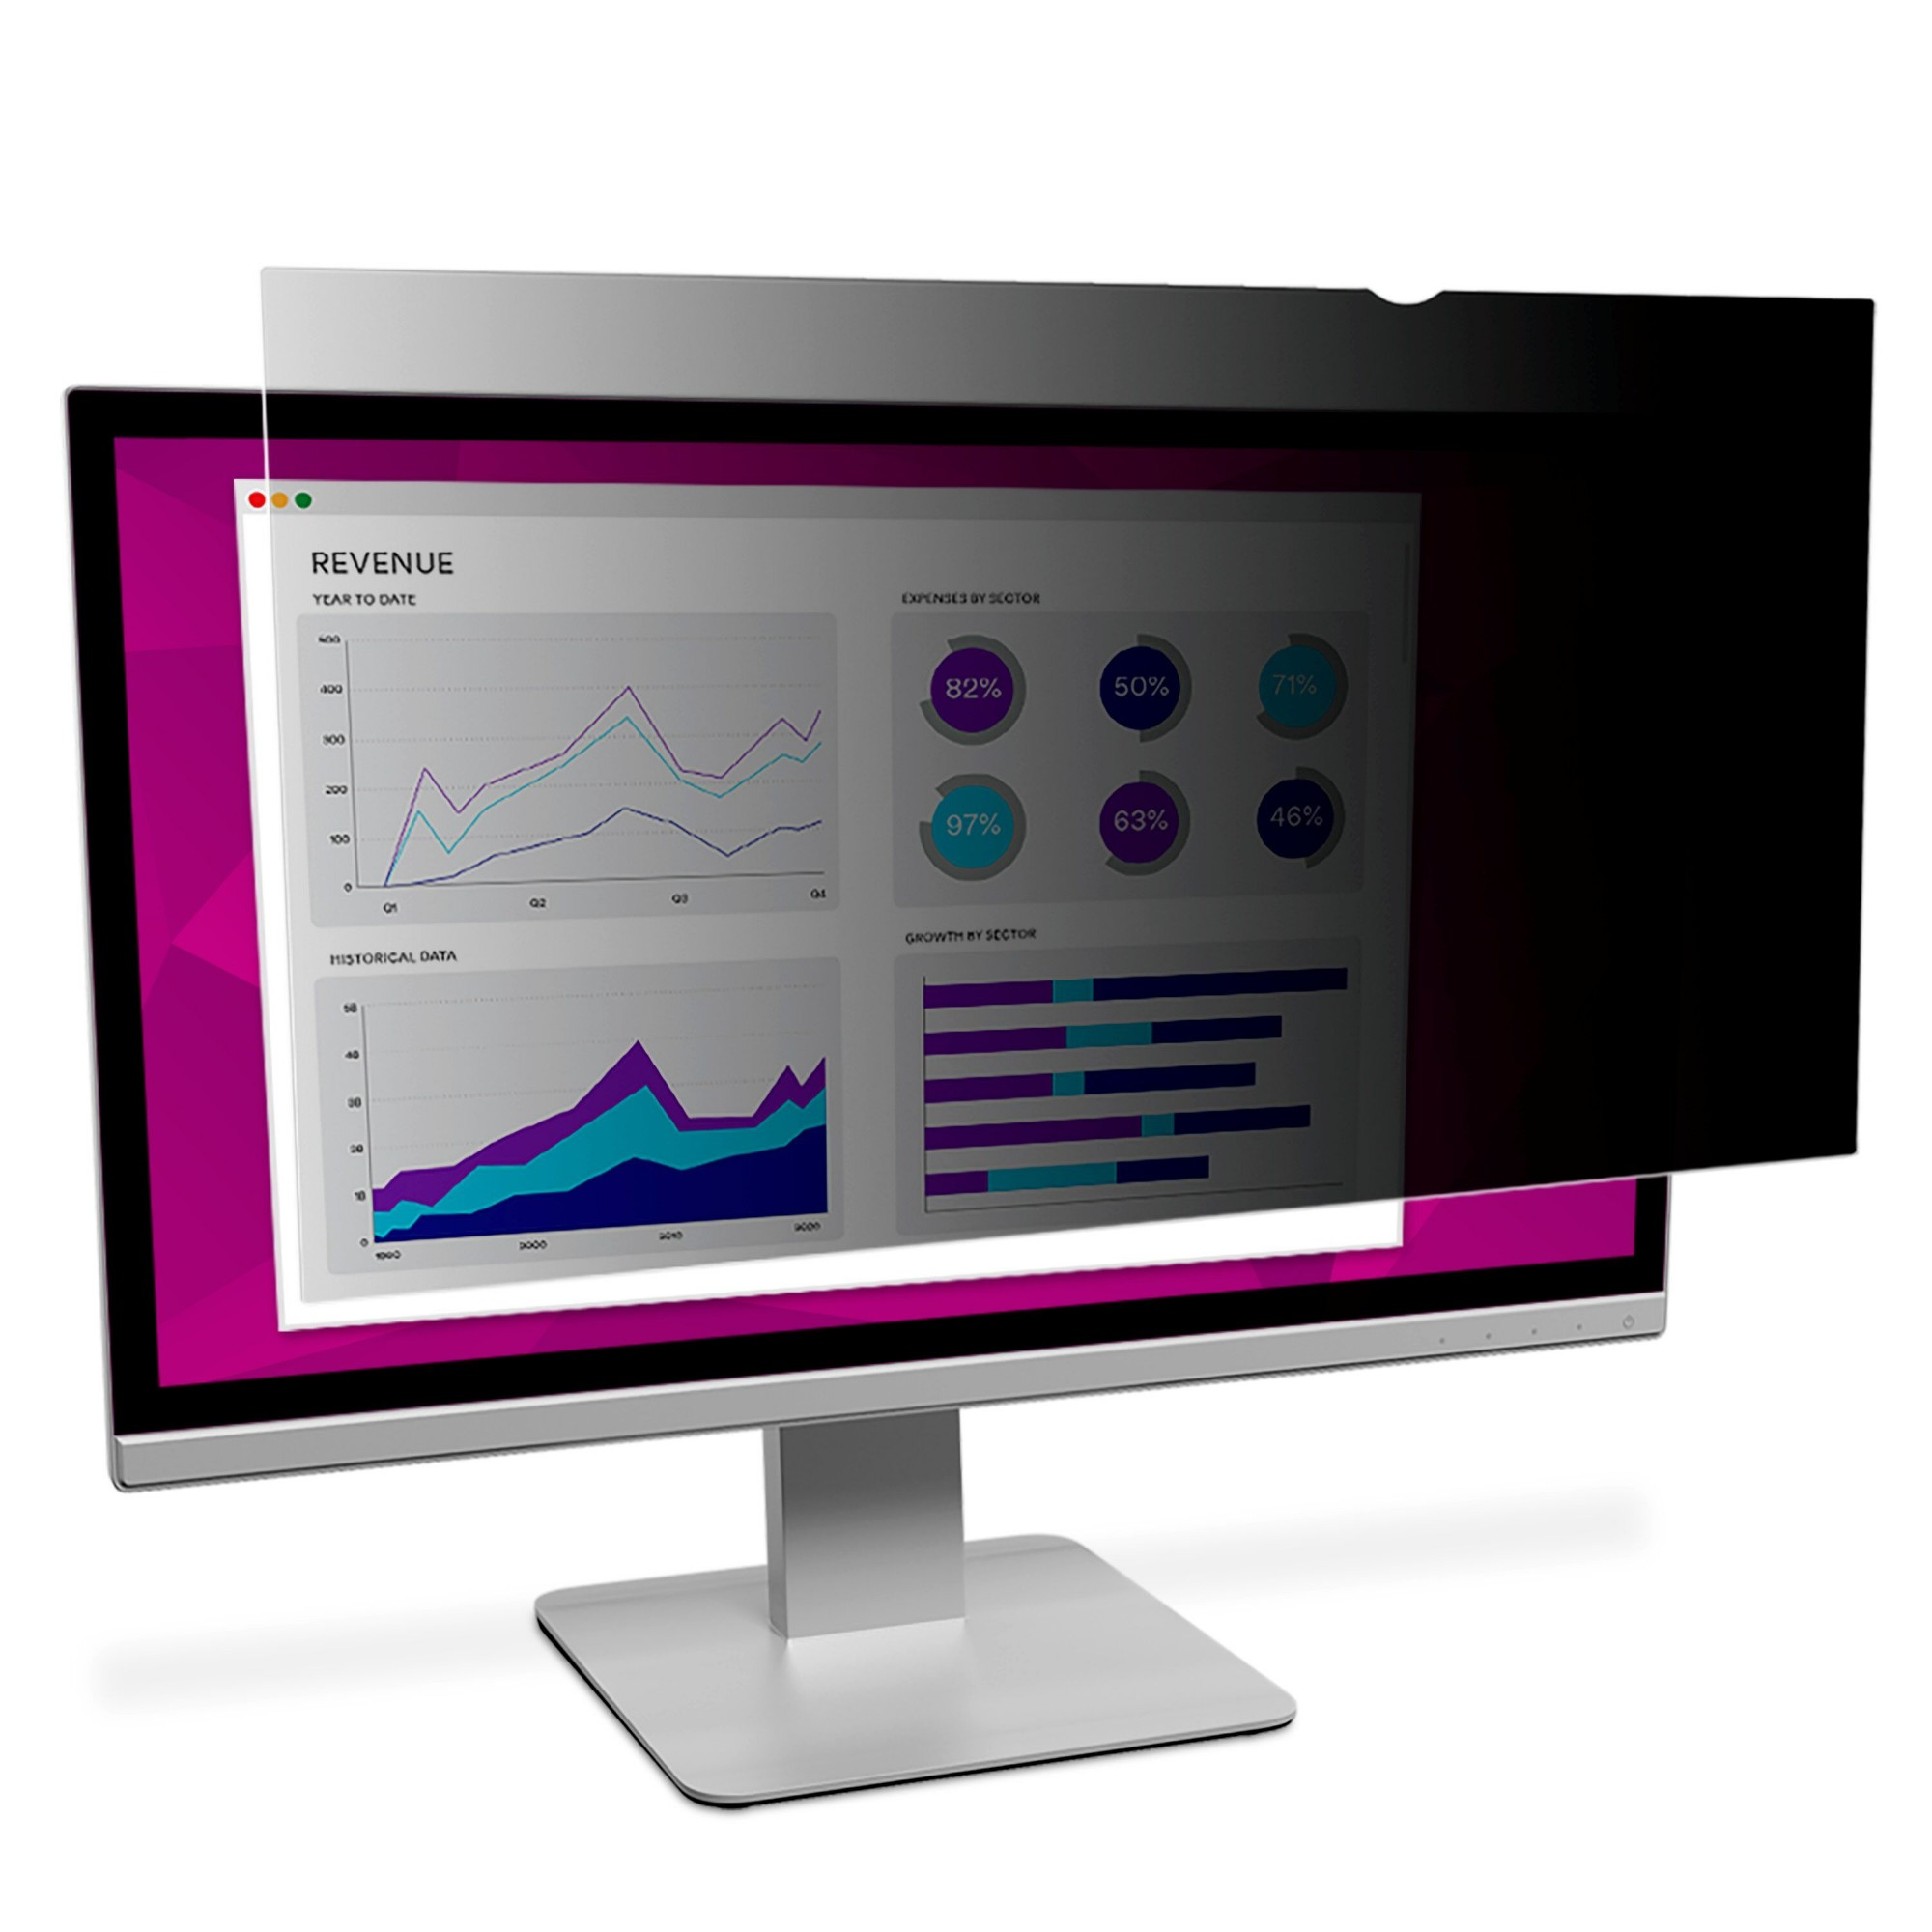 3M High Clarity Privacy Filter for 27″ Widescreen Monitor